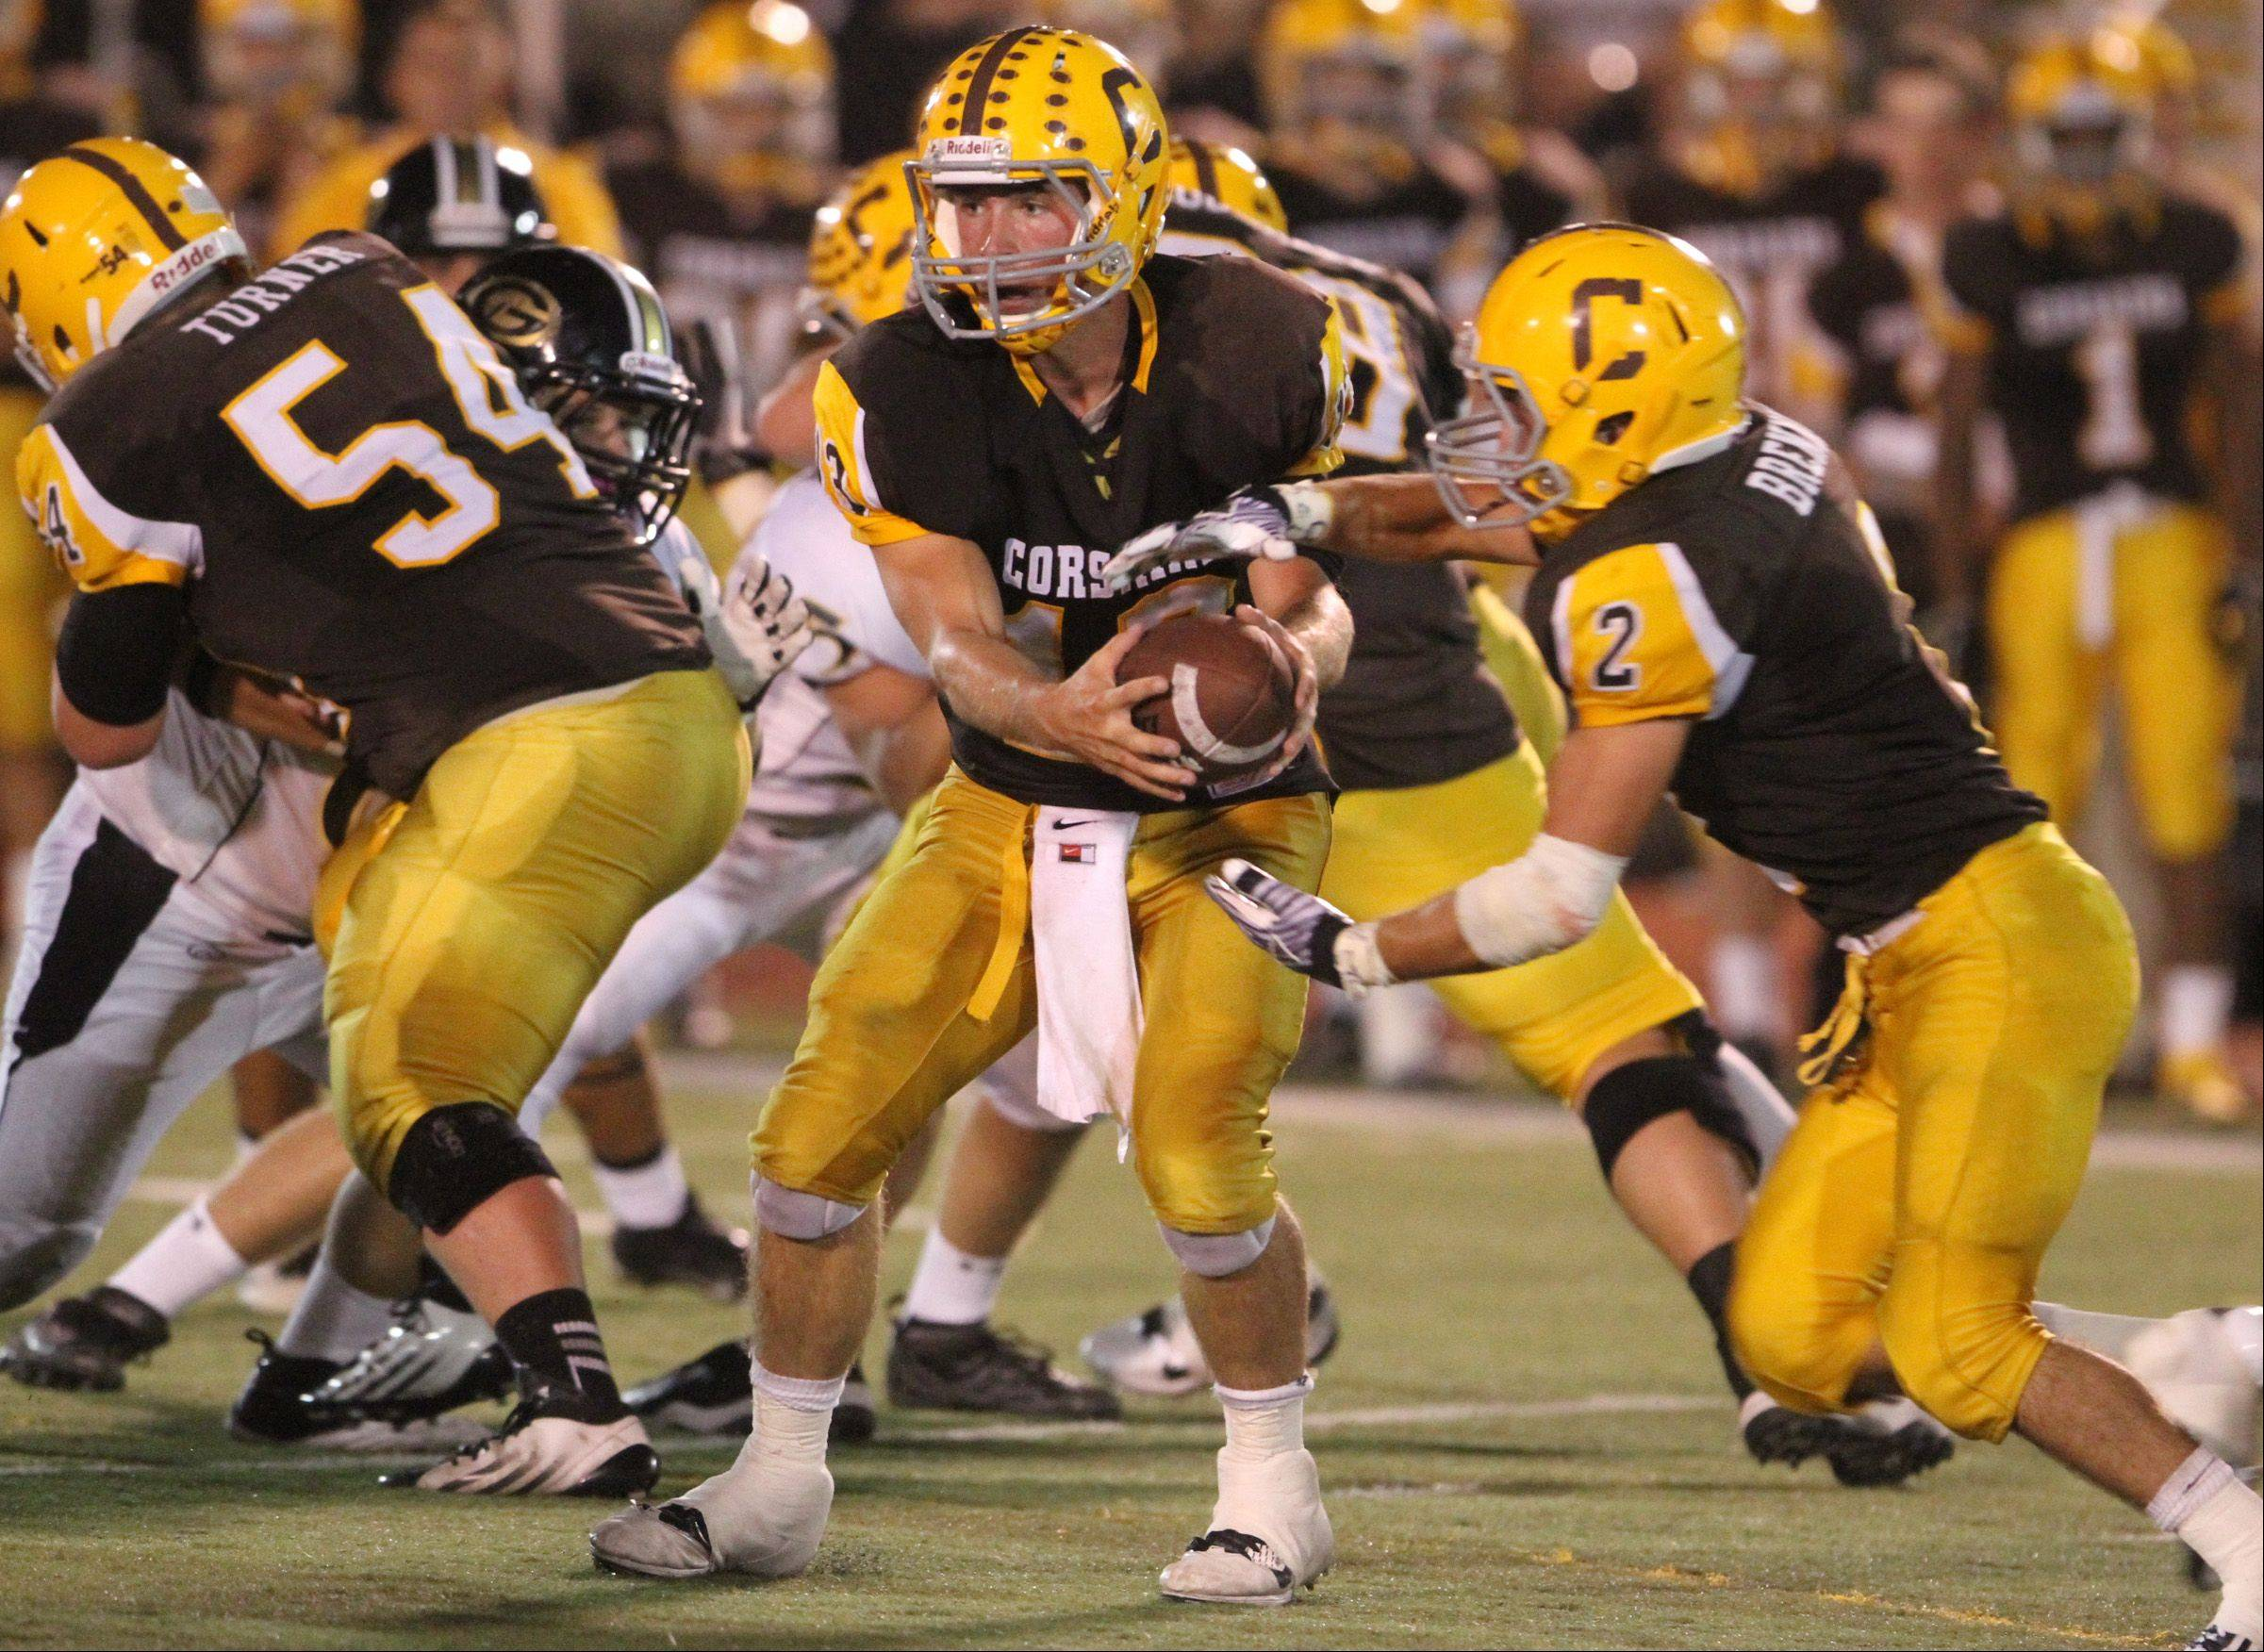 Carmel's quarterback Josh Walinski hands off to running back Sean Brennan.